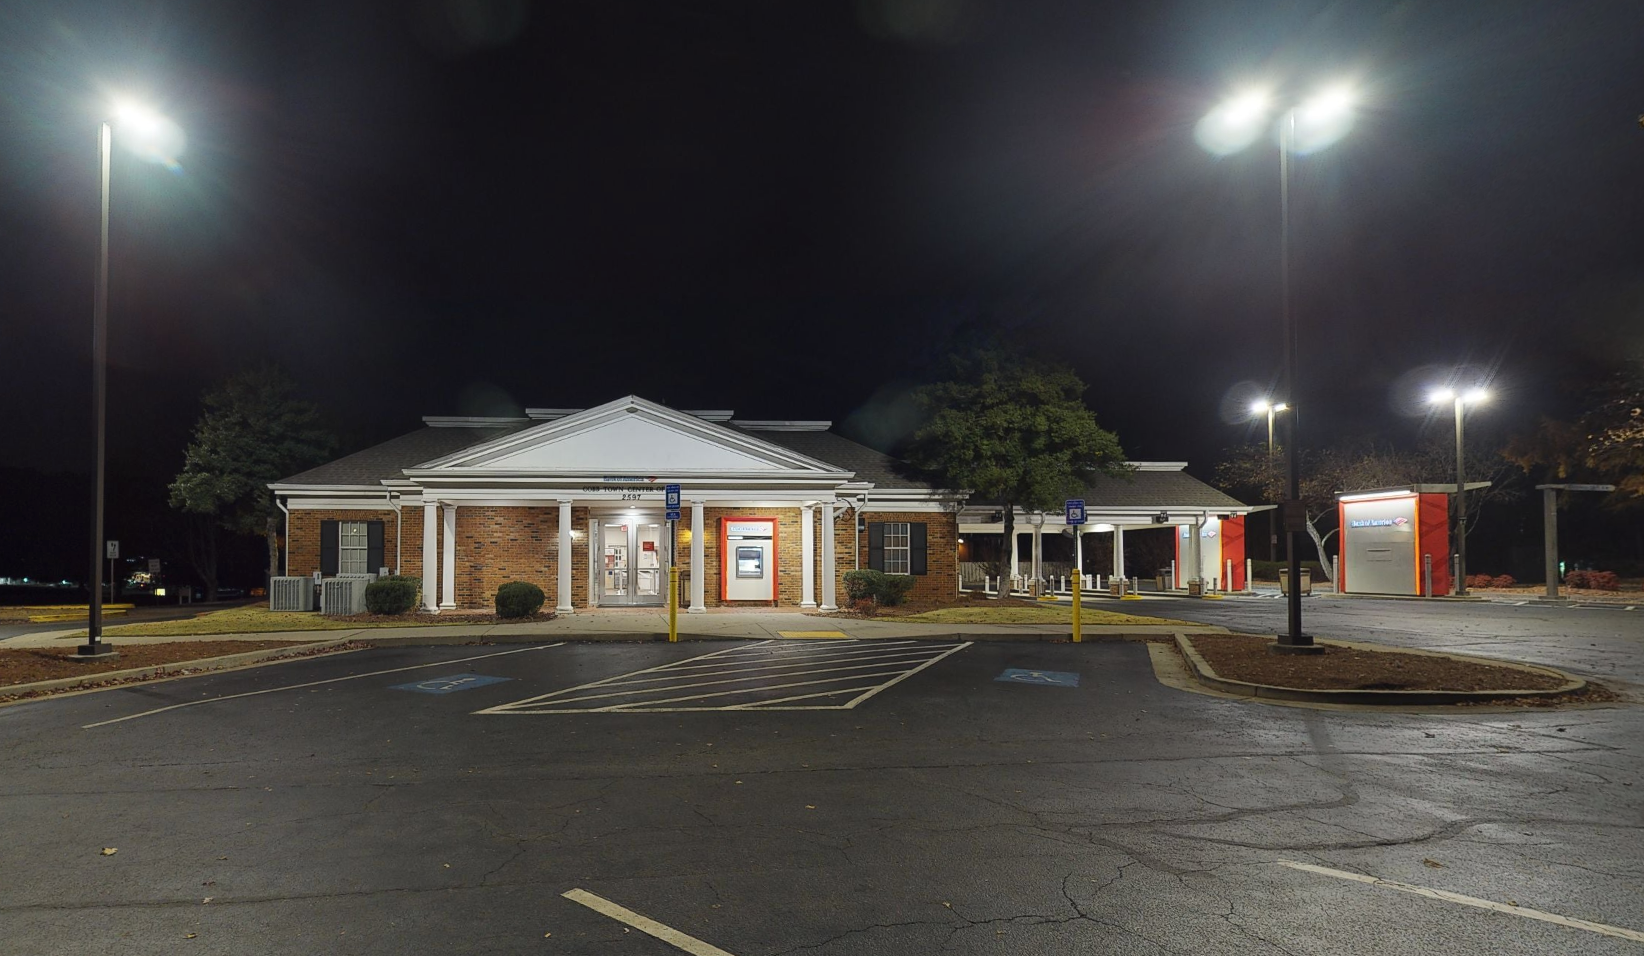 Bank of America financial center with drive-thru ATM and teller   2597 George Busbee Pkwy NW, Kennesaw, GA 30144